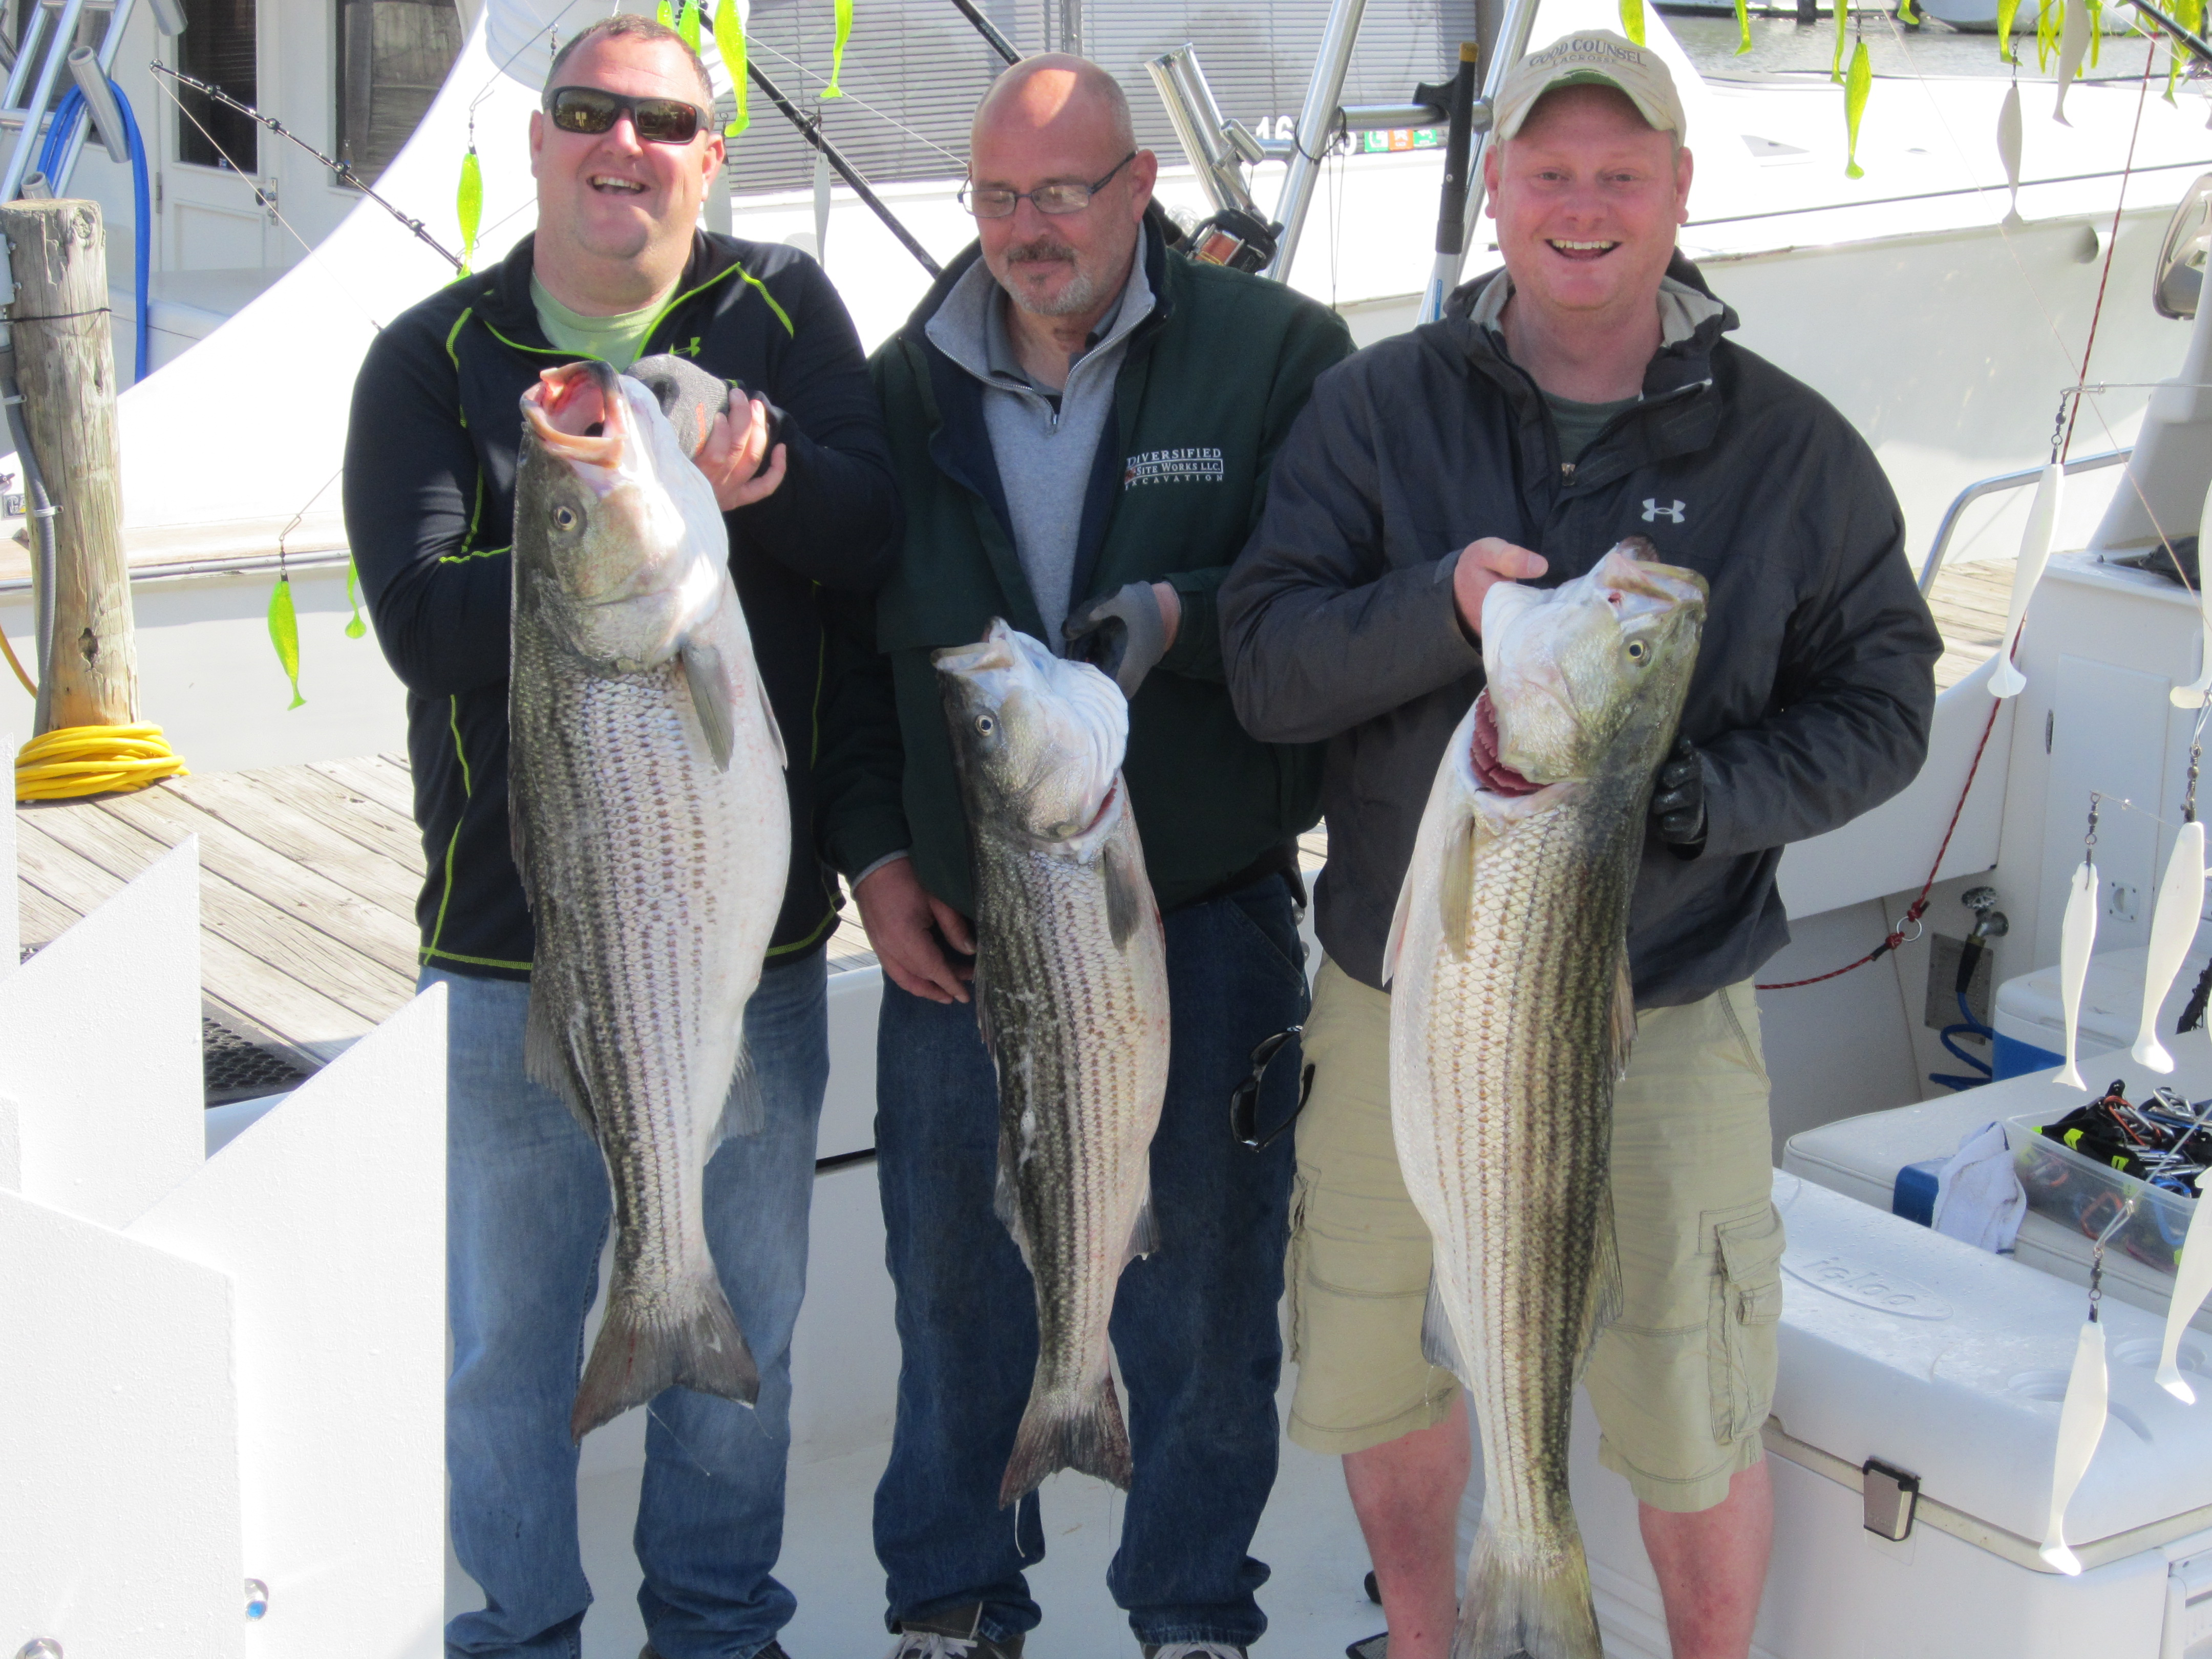 Chesapeake bay fishing charter trophy rockfishing don 39 t for Deale md fishing charters